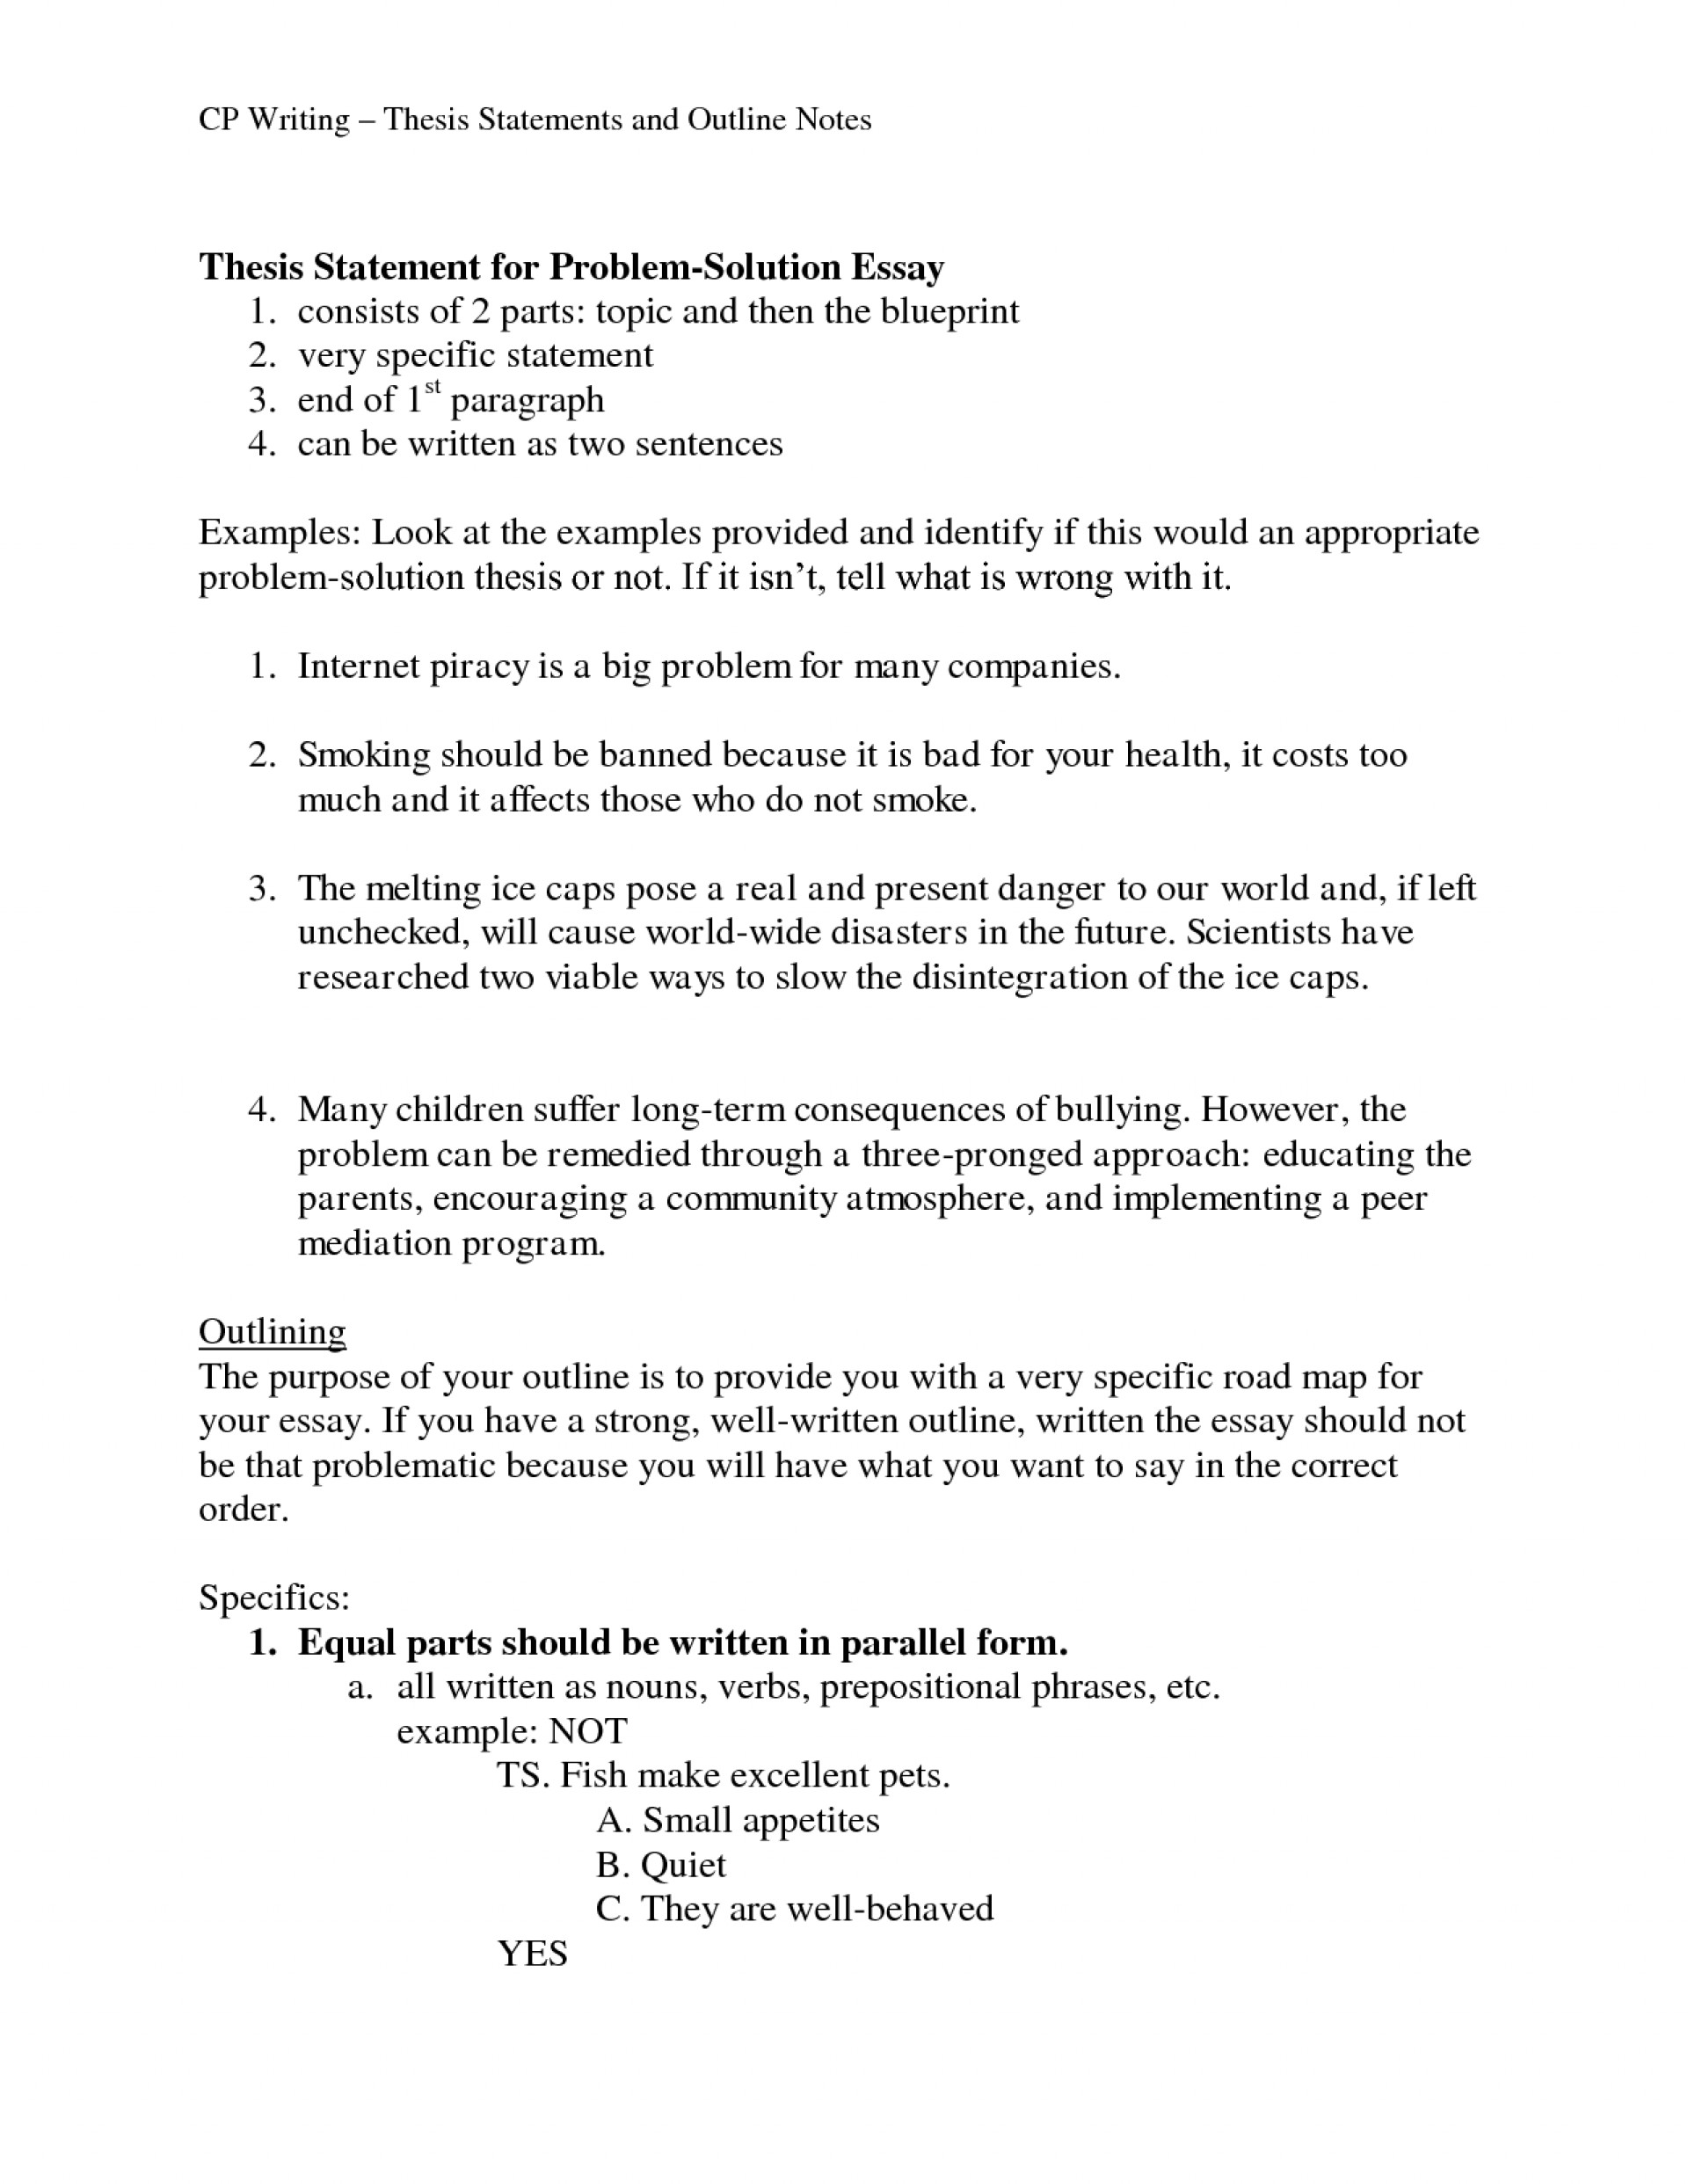 018 Research Paper Examples Of Thesis Statements For Papers Phenomenal Argumentative Statement Pdf Example Career 1920